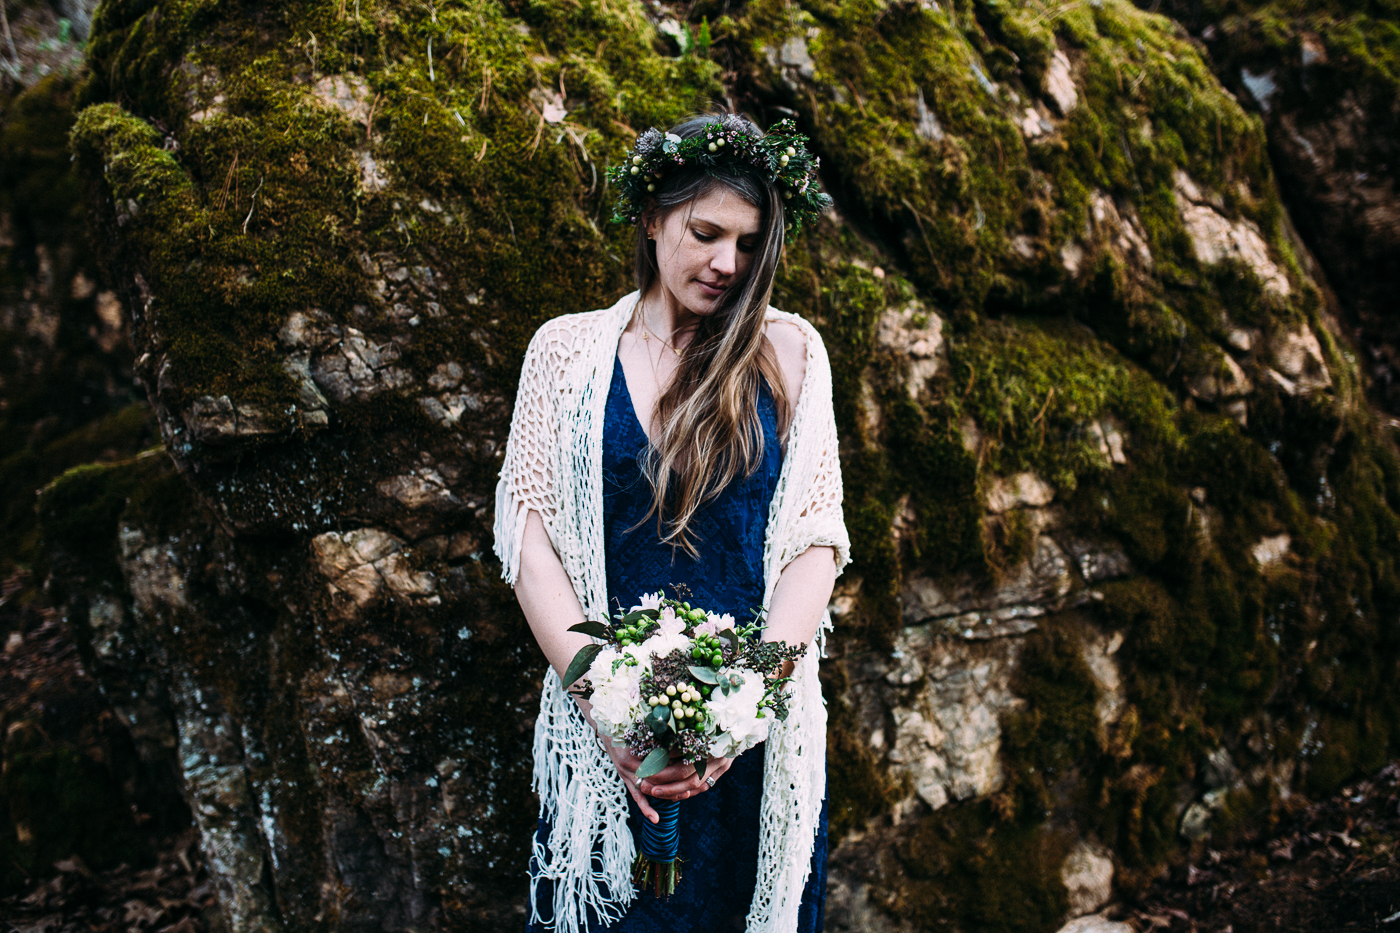 erinwheat photography-jplaurenelopement6842